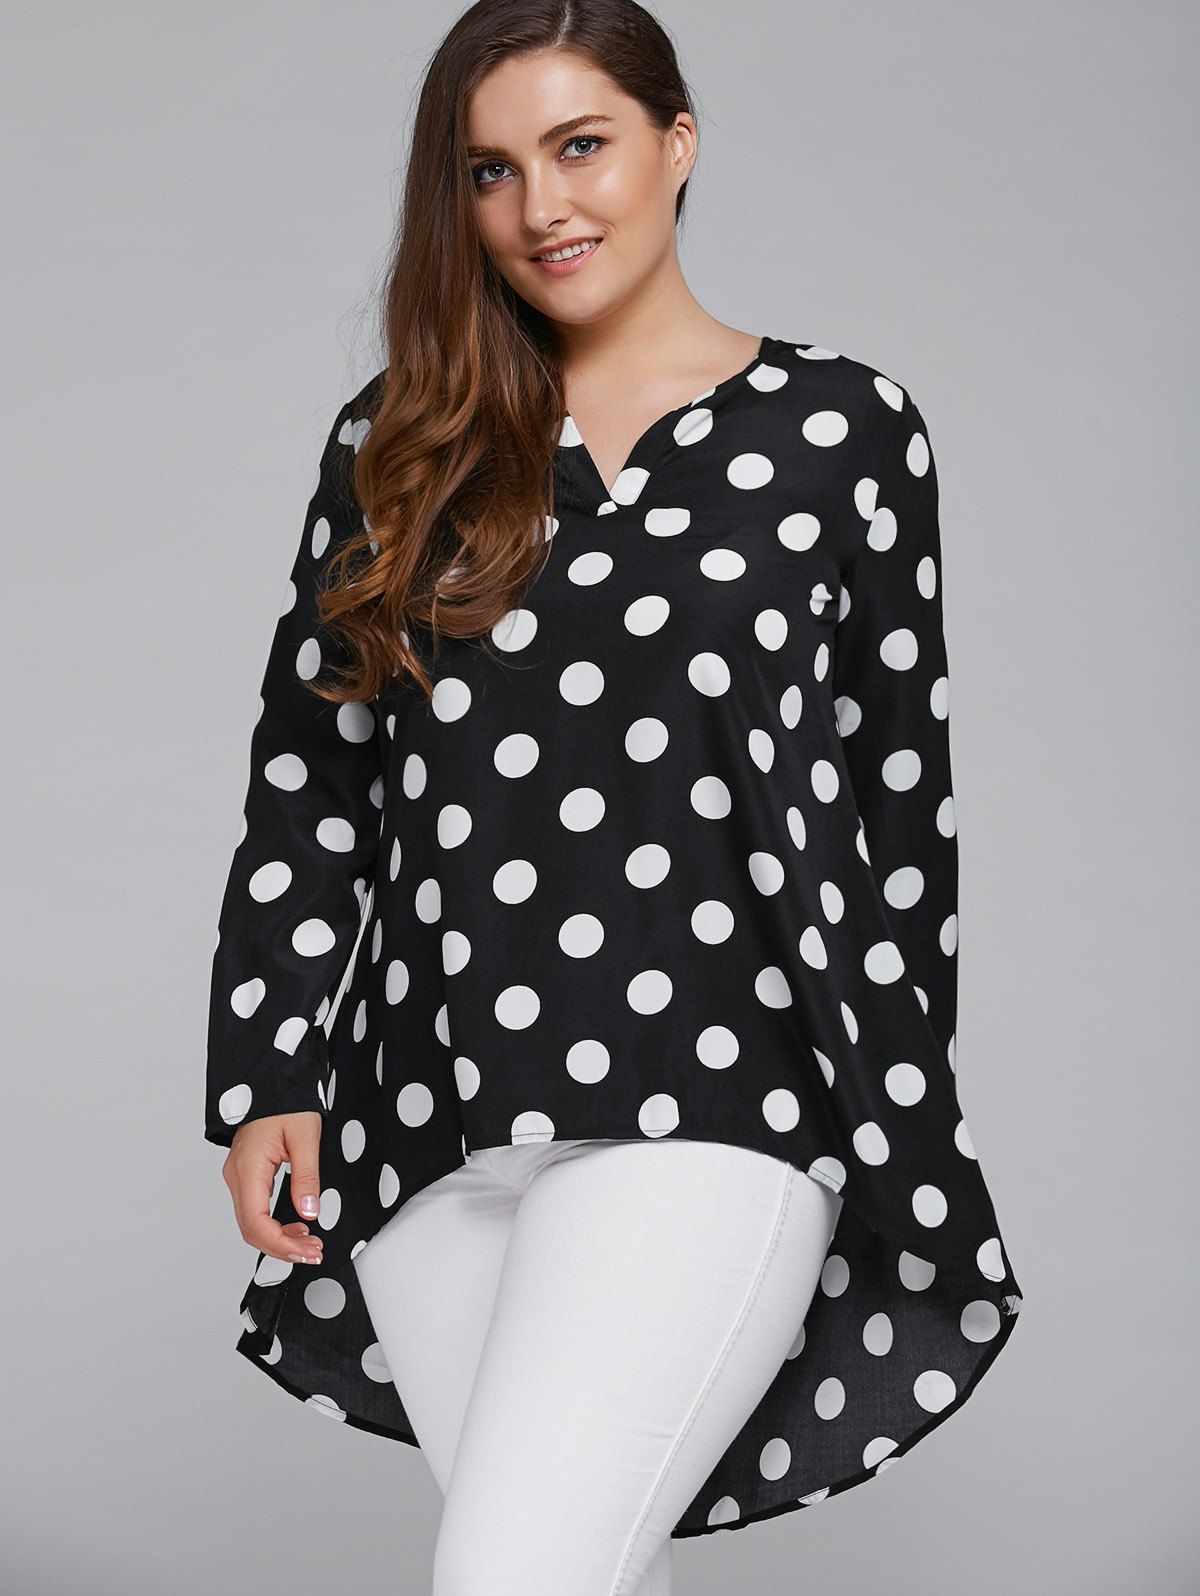 a2d3559634 Tops | White And Black 3xl Plus Size Polka Dot Loose Fitting Blouse -  Gamiss Plus